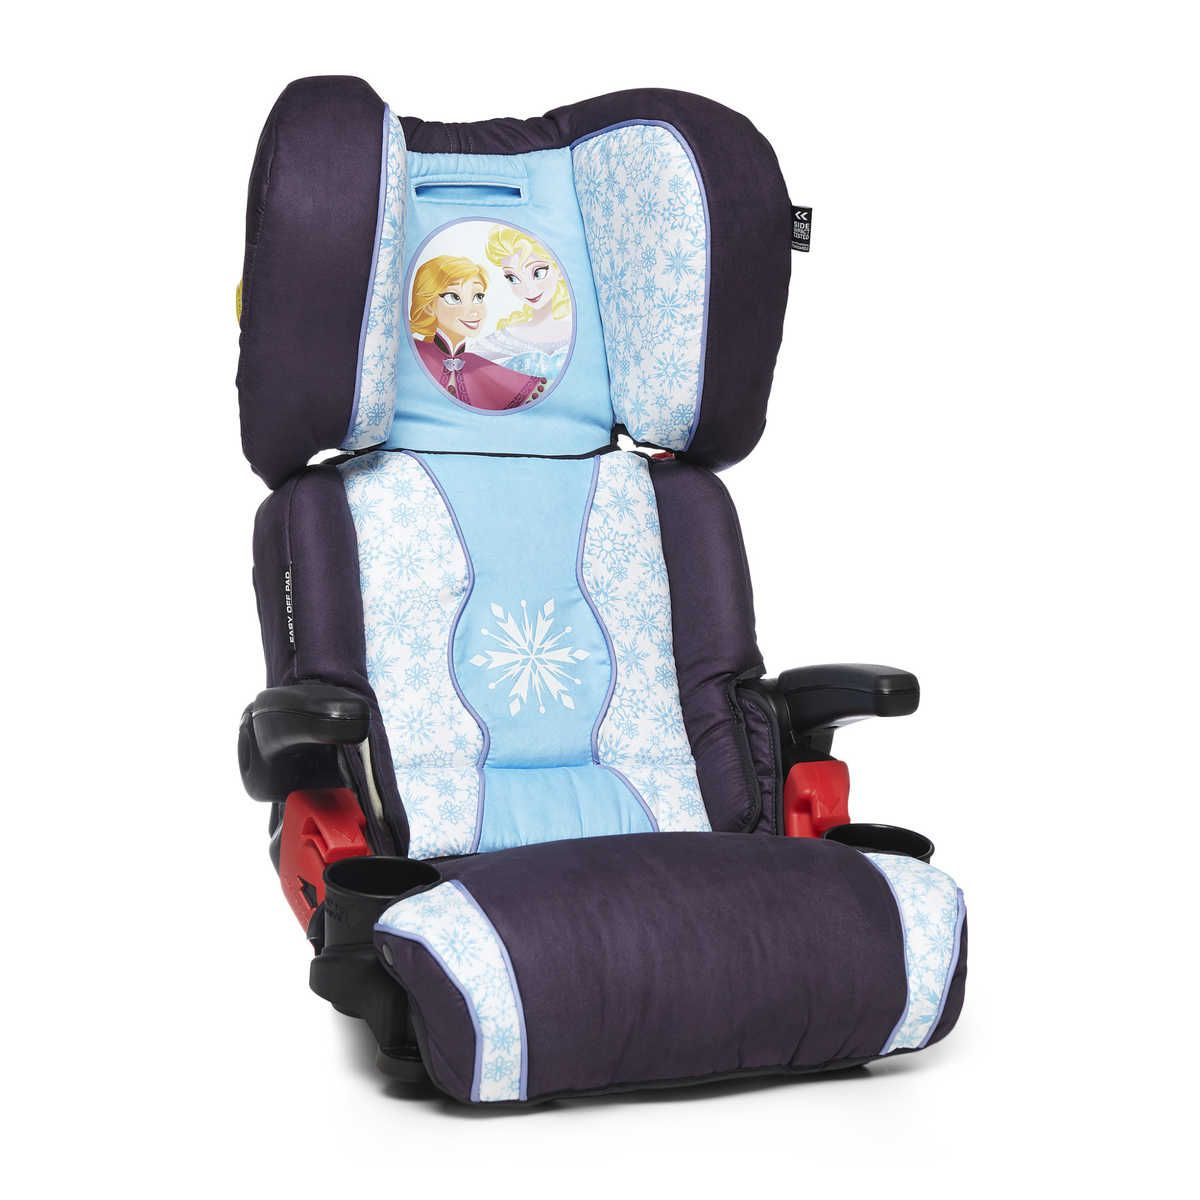 The Disney Frozen Booster Car Seat Is Suitable For Children Aged 4 8 Years Has A Deep Contoured Energy Absorbing Headrest And Compact Easy To Fold